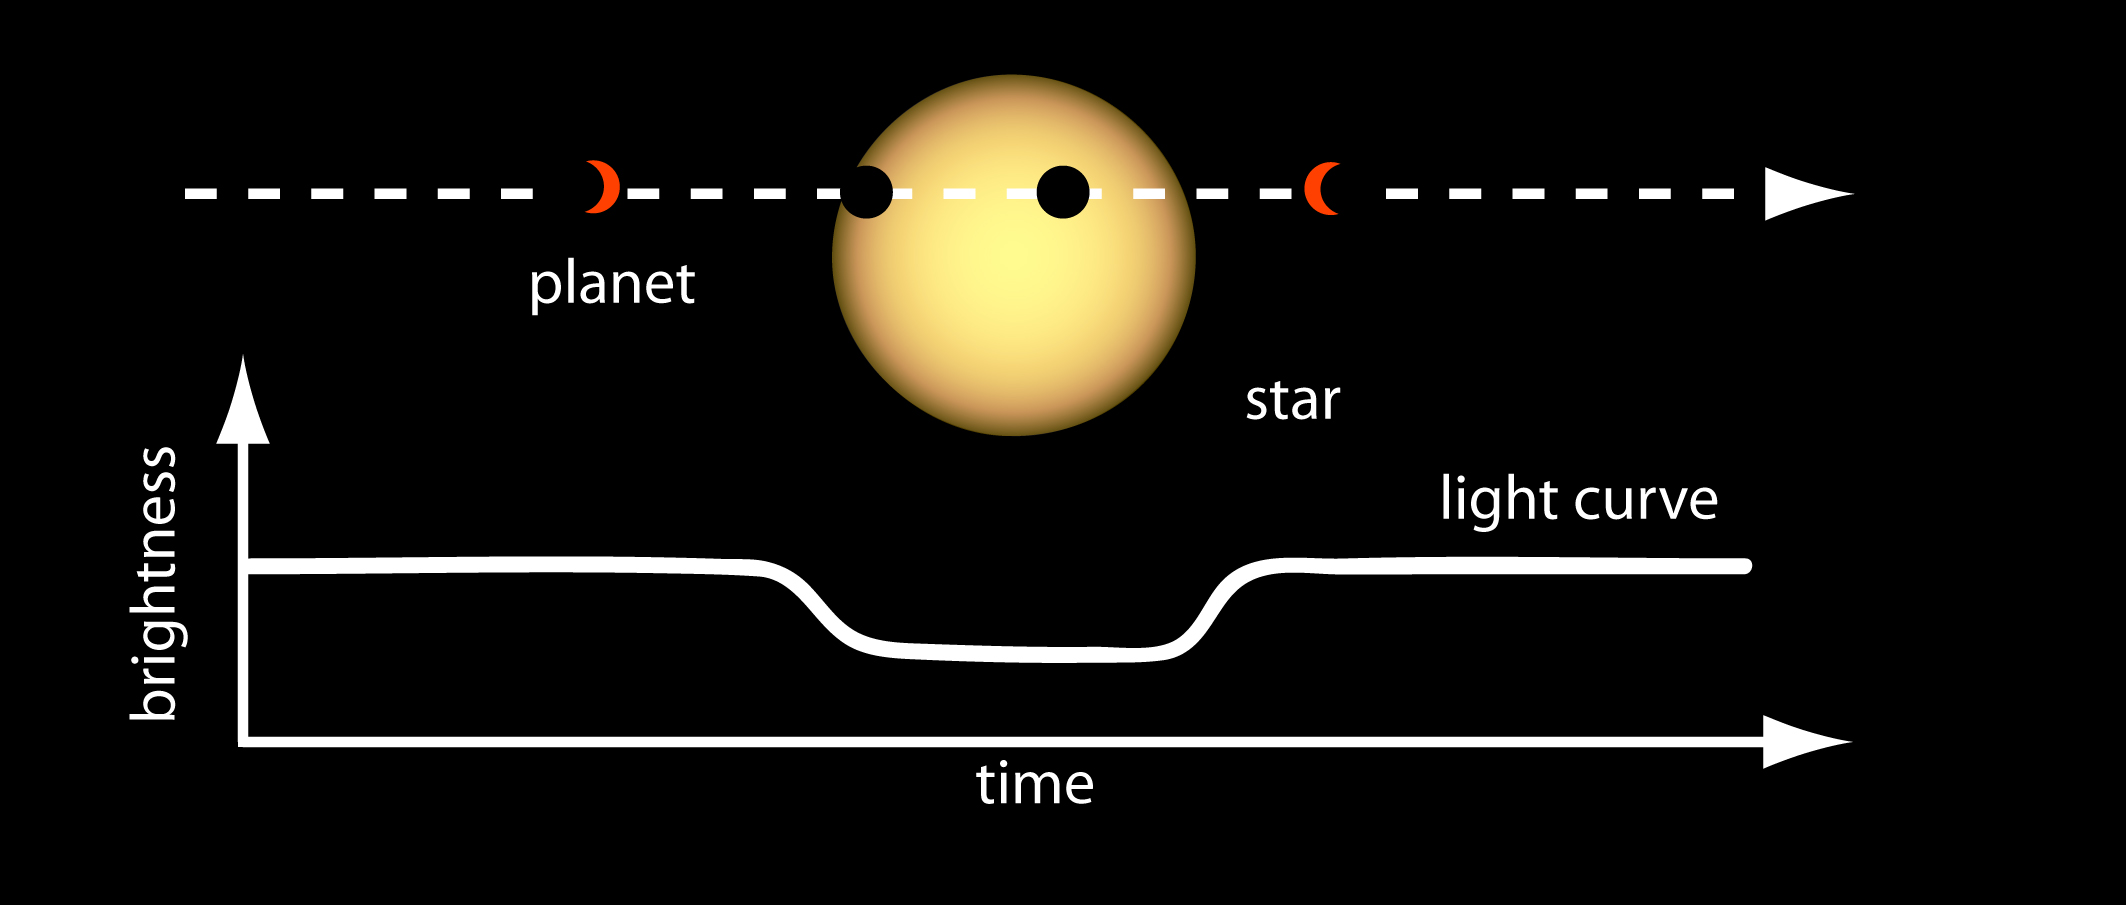 illustration of how transits are used to find exoplanets